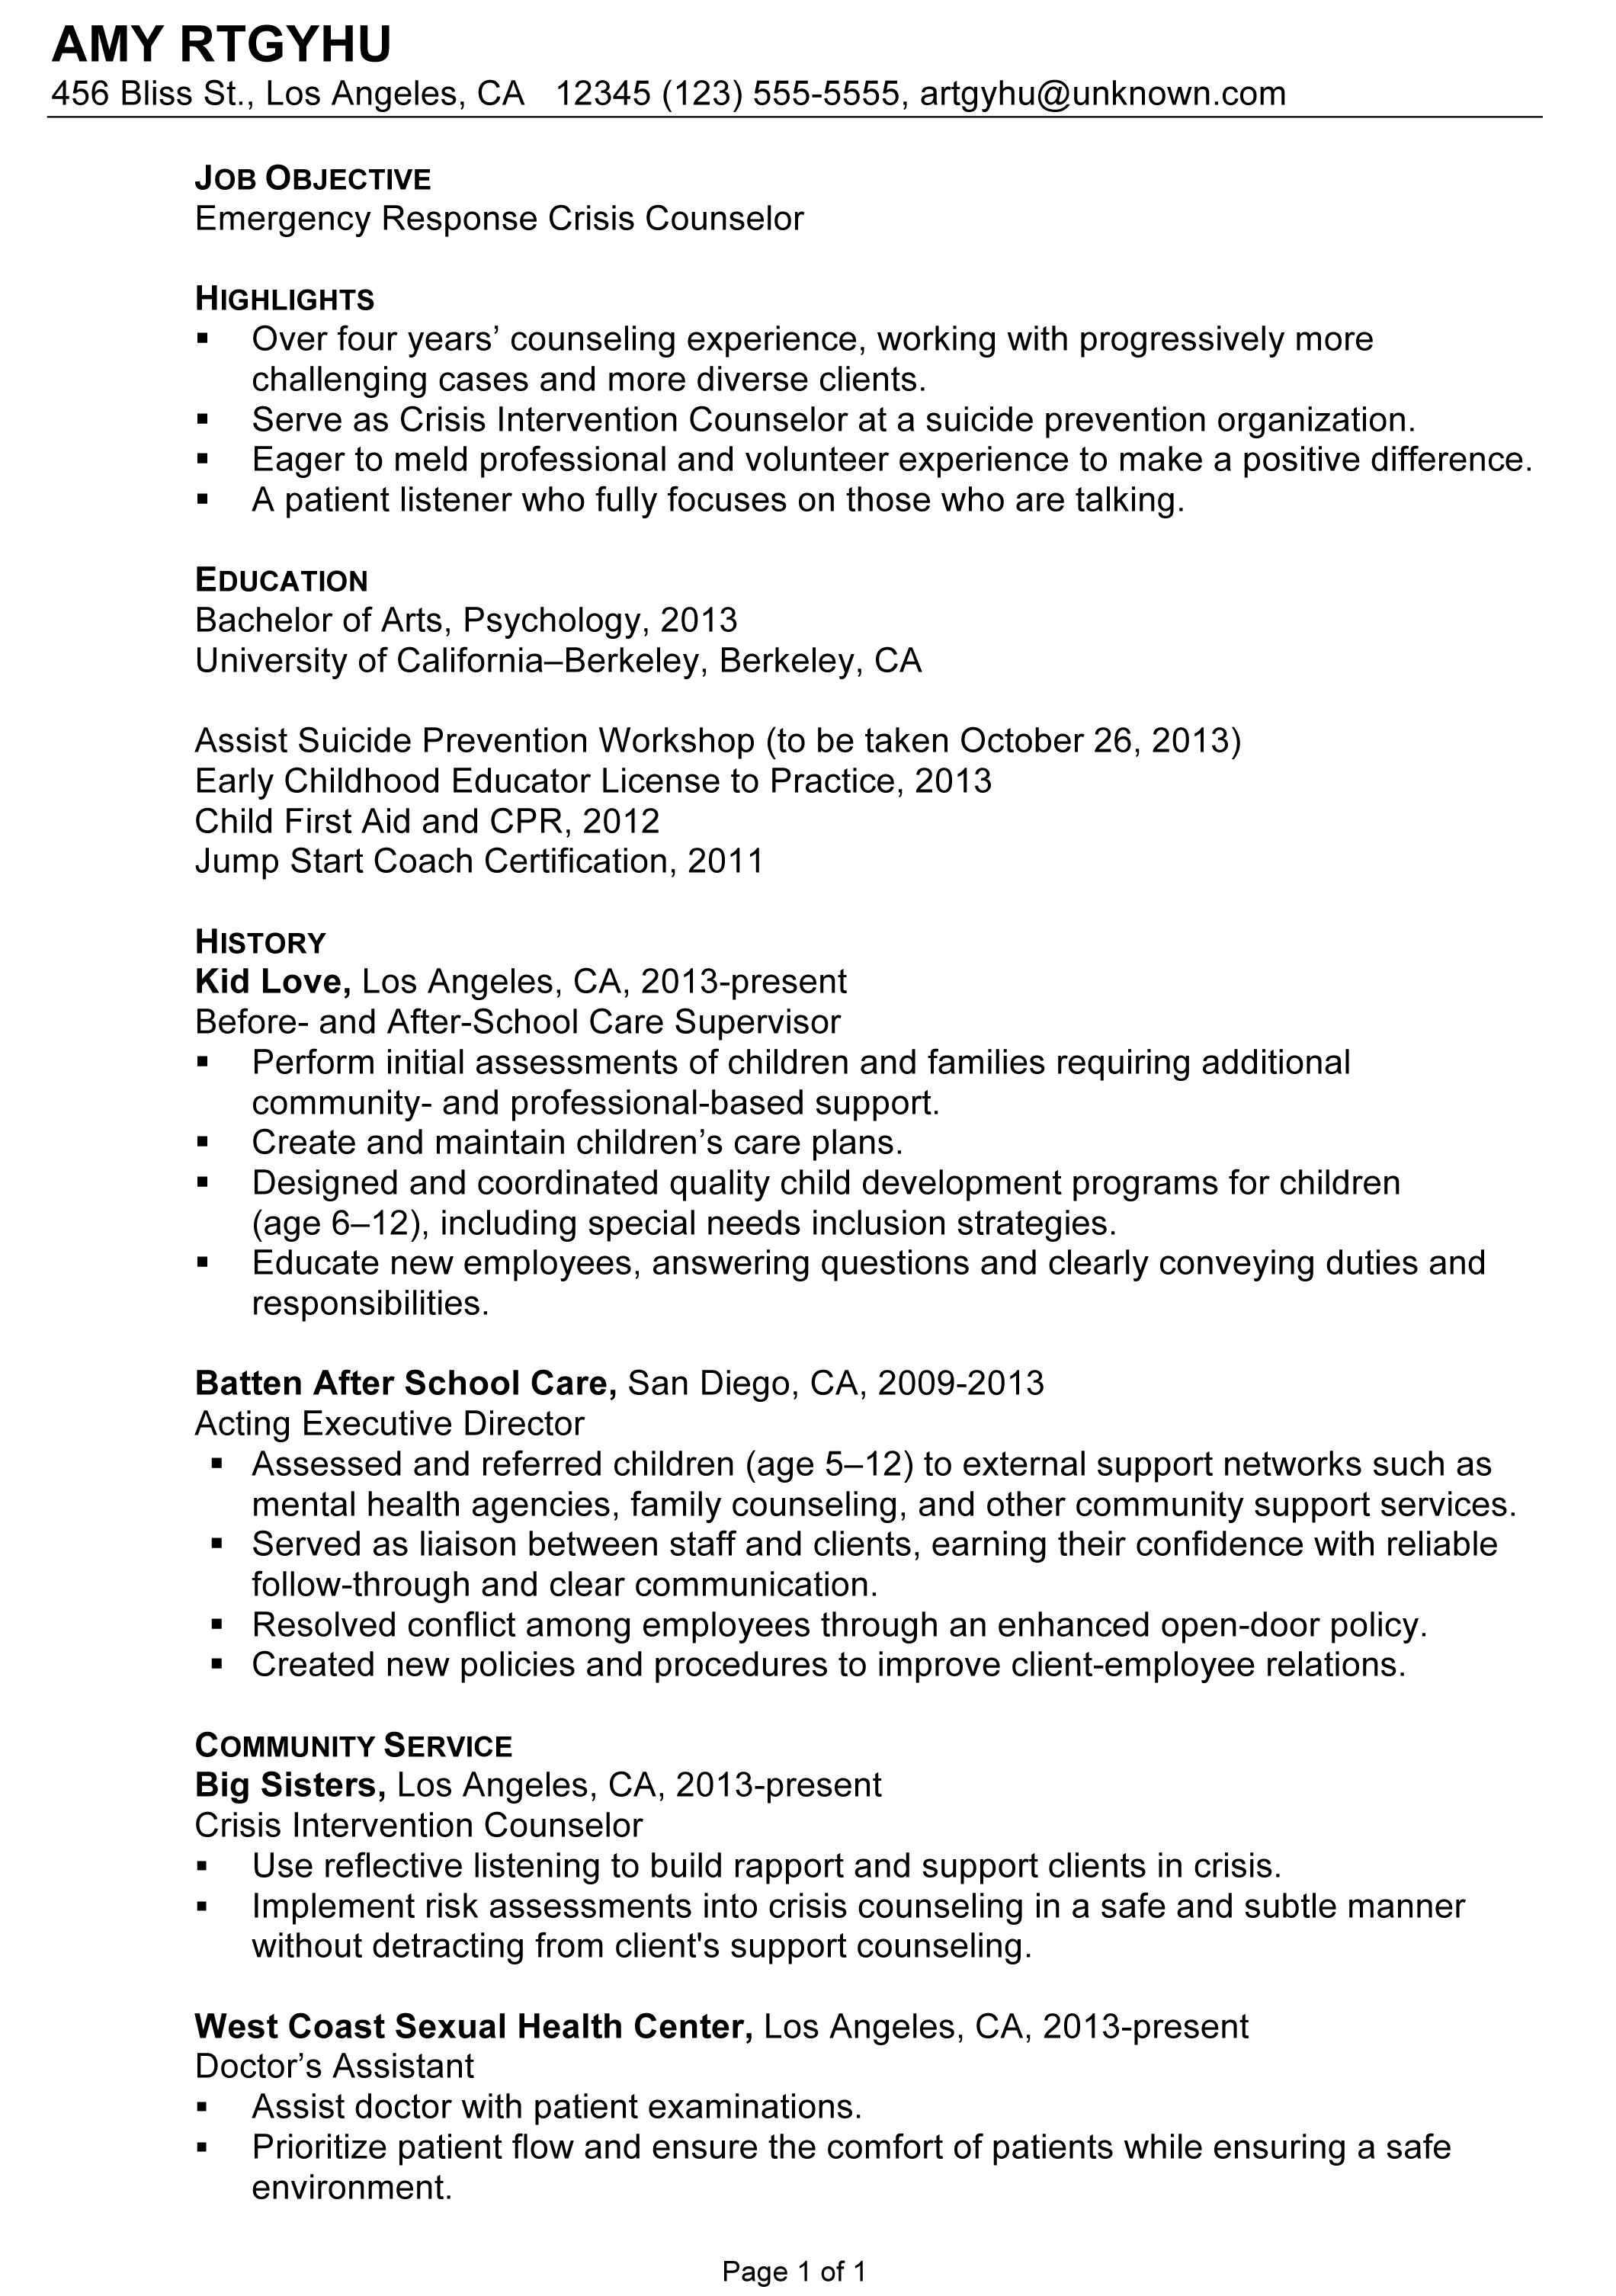 Crisis Intervention Counselor Cover Letter | Roberts 7 Stage Crisis ...